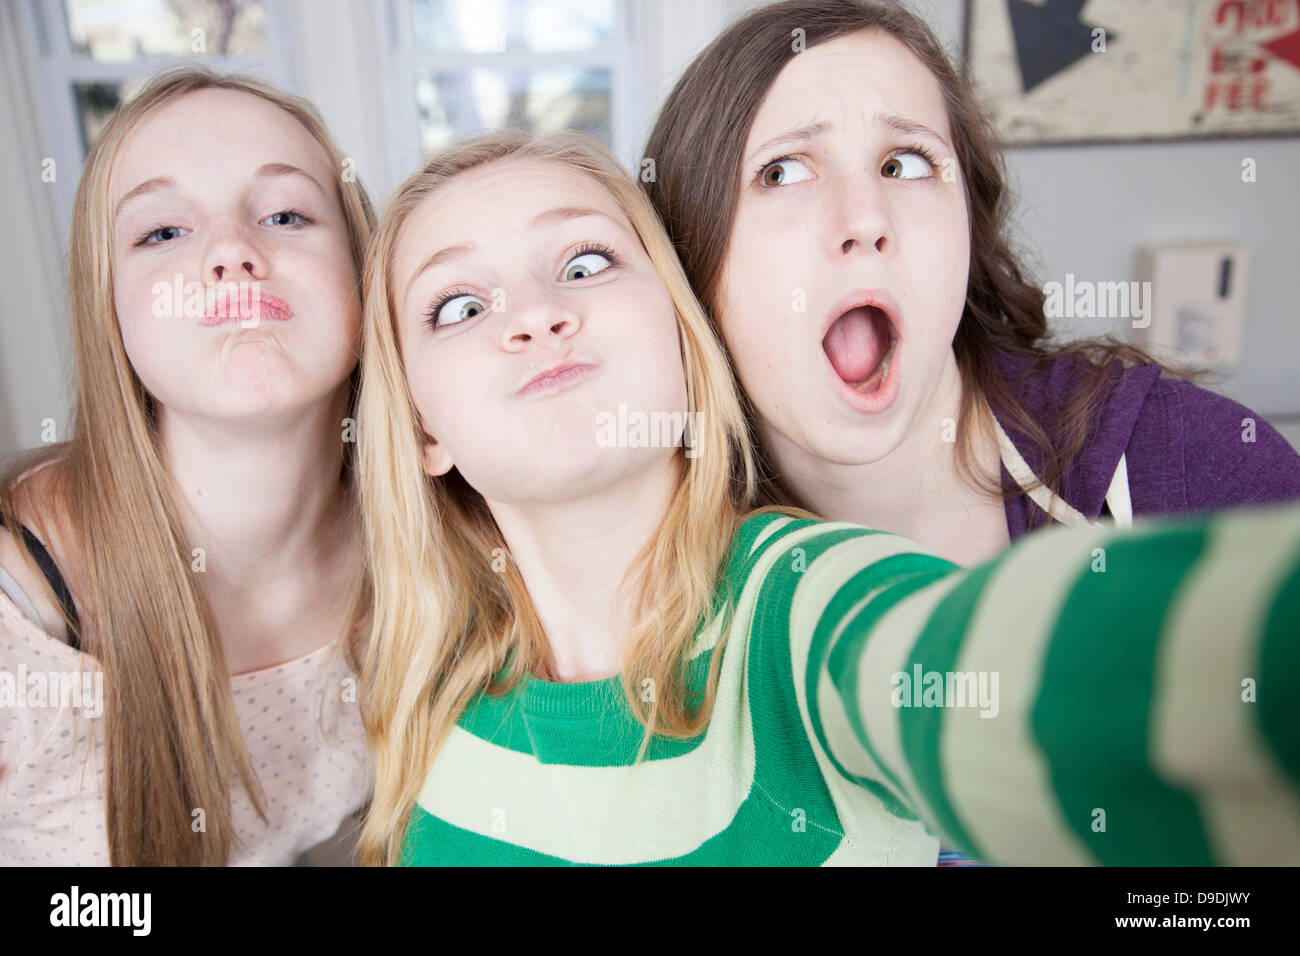 Les adolescents tirant funny faces Banque D'Images